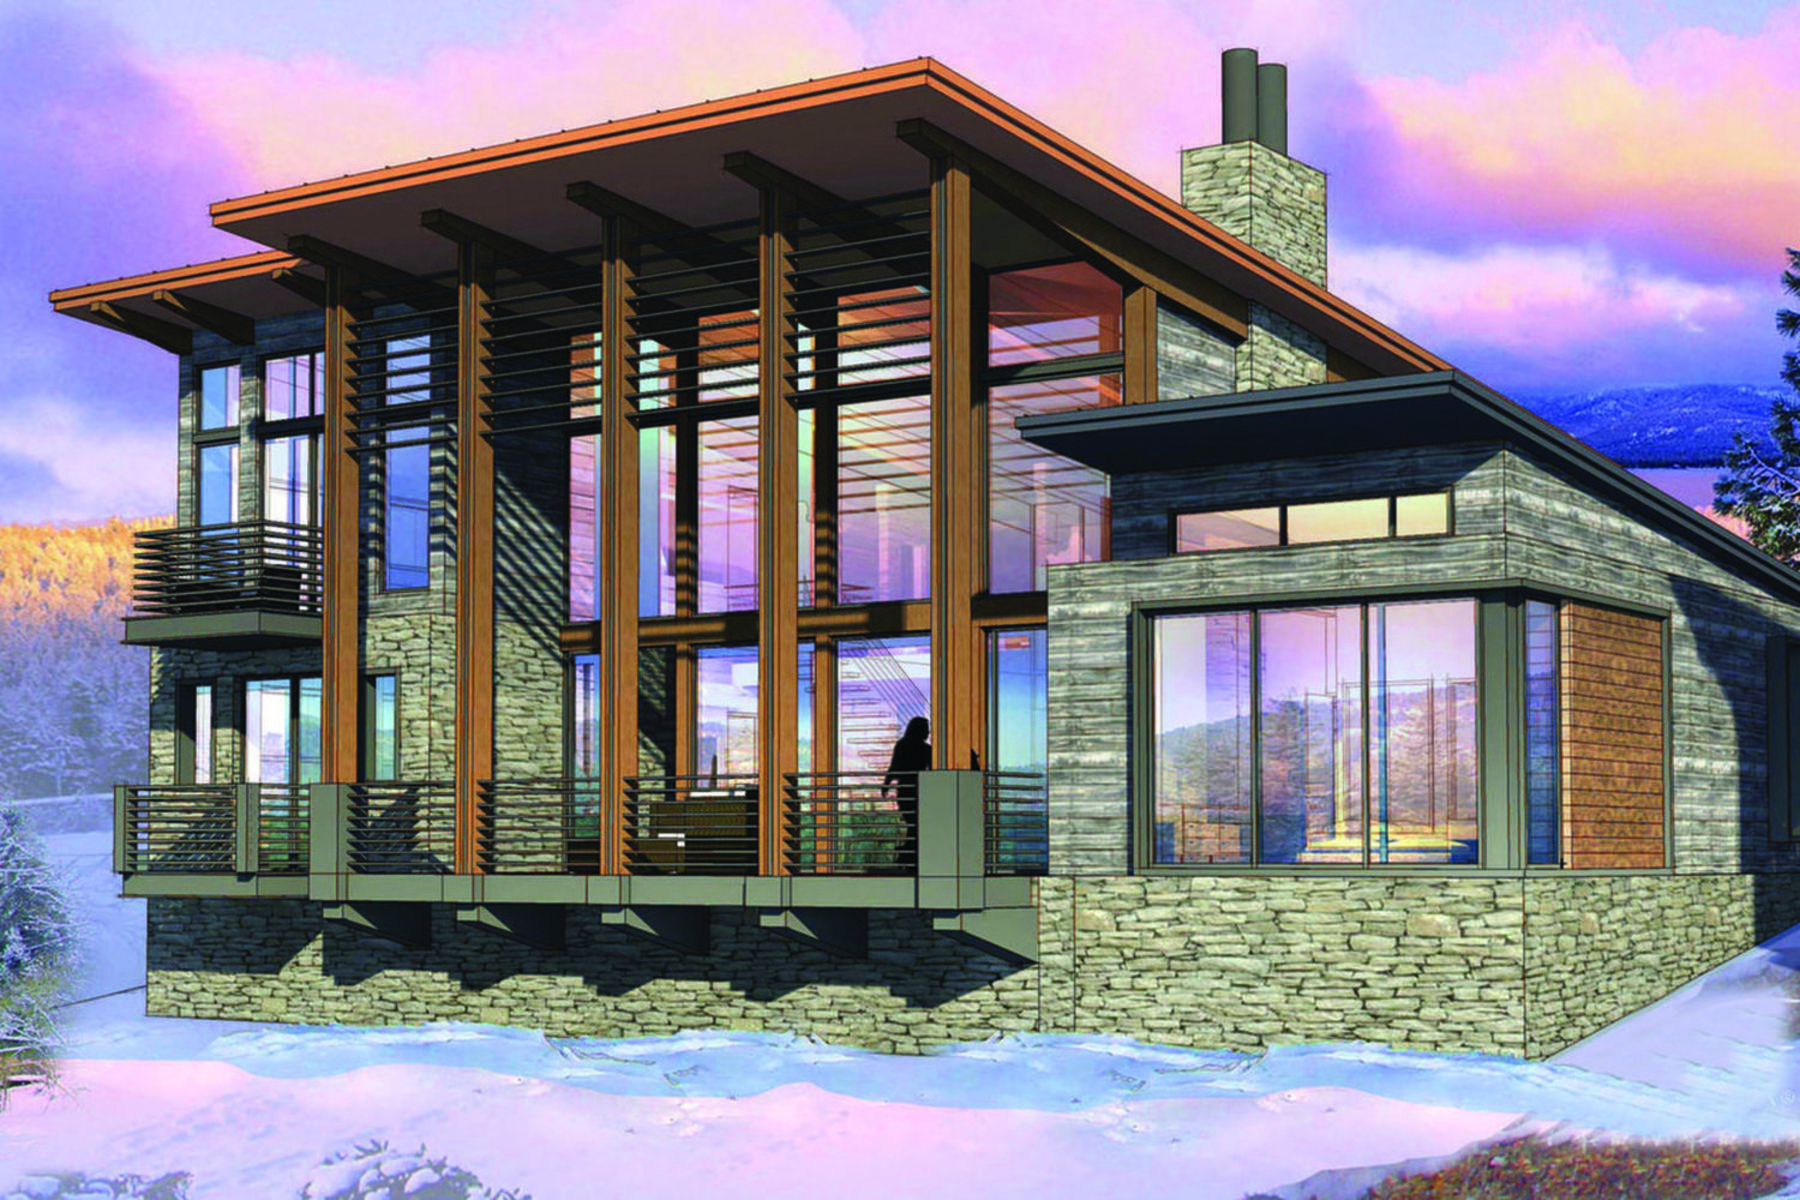 Single Family Home for Sale at New Nicklaus Golf Cabin Promontory 6650 Golden Bear Loop West Park City, Utah, 84098 United States